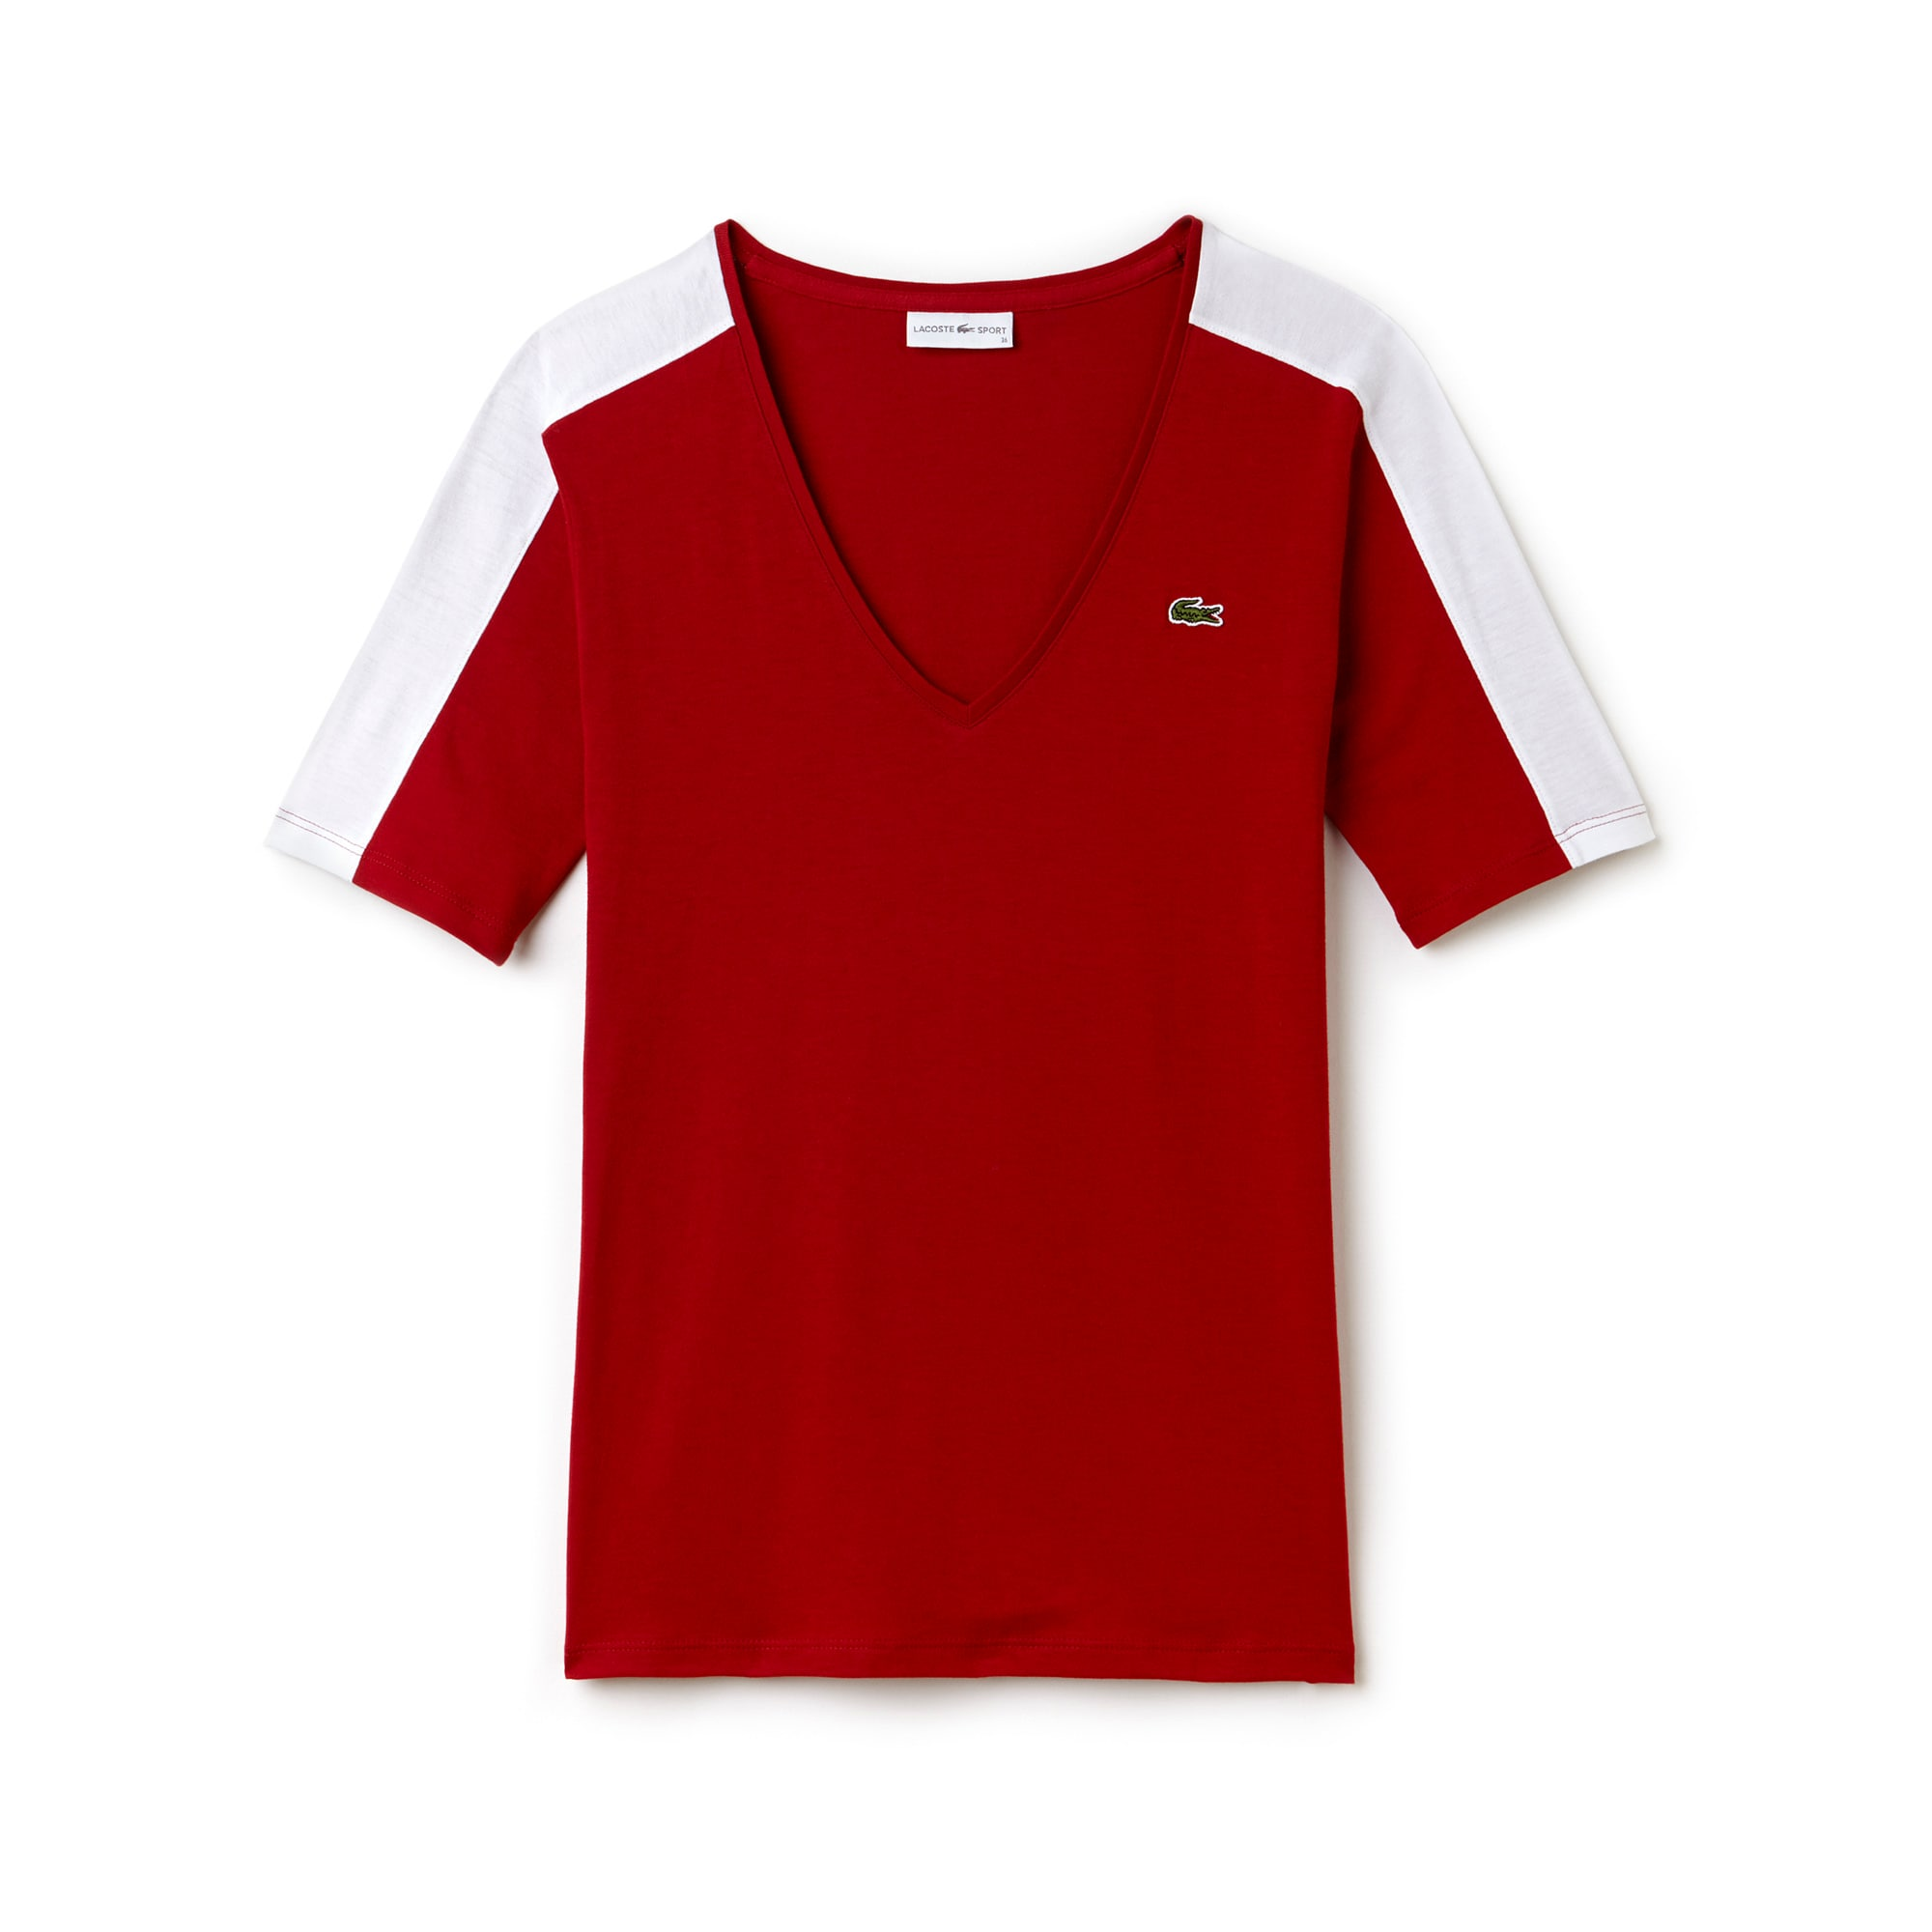 Women's Lacoste SPORT Tennis V-neck Flowing Jersey T-shirt